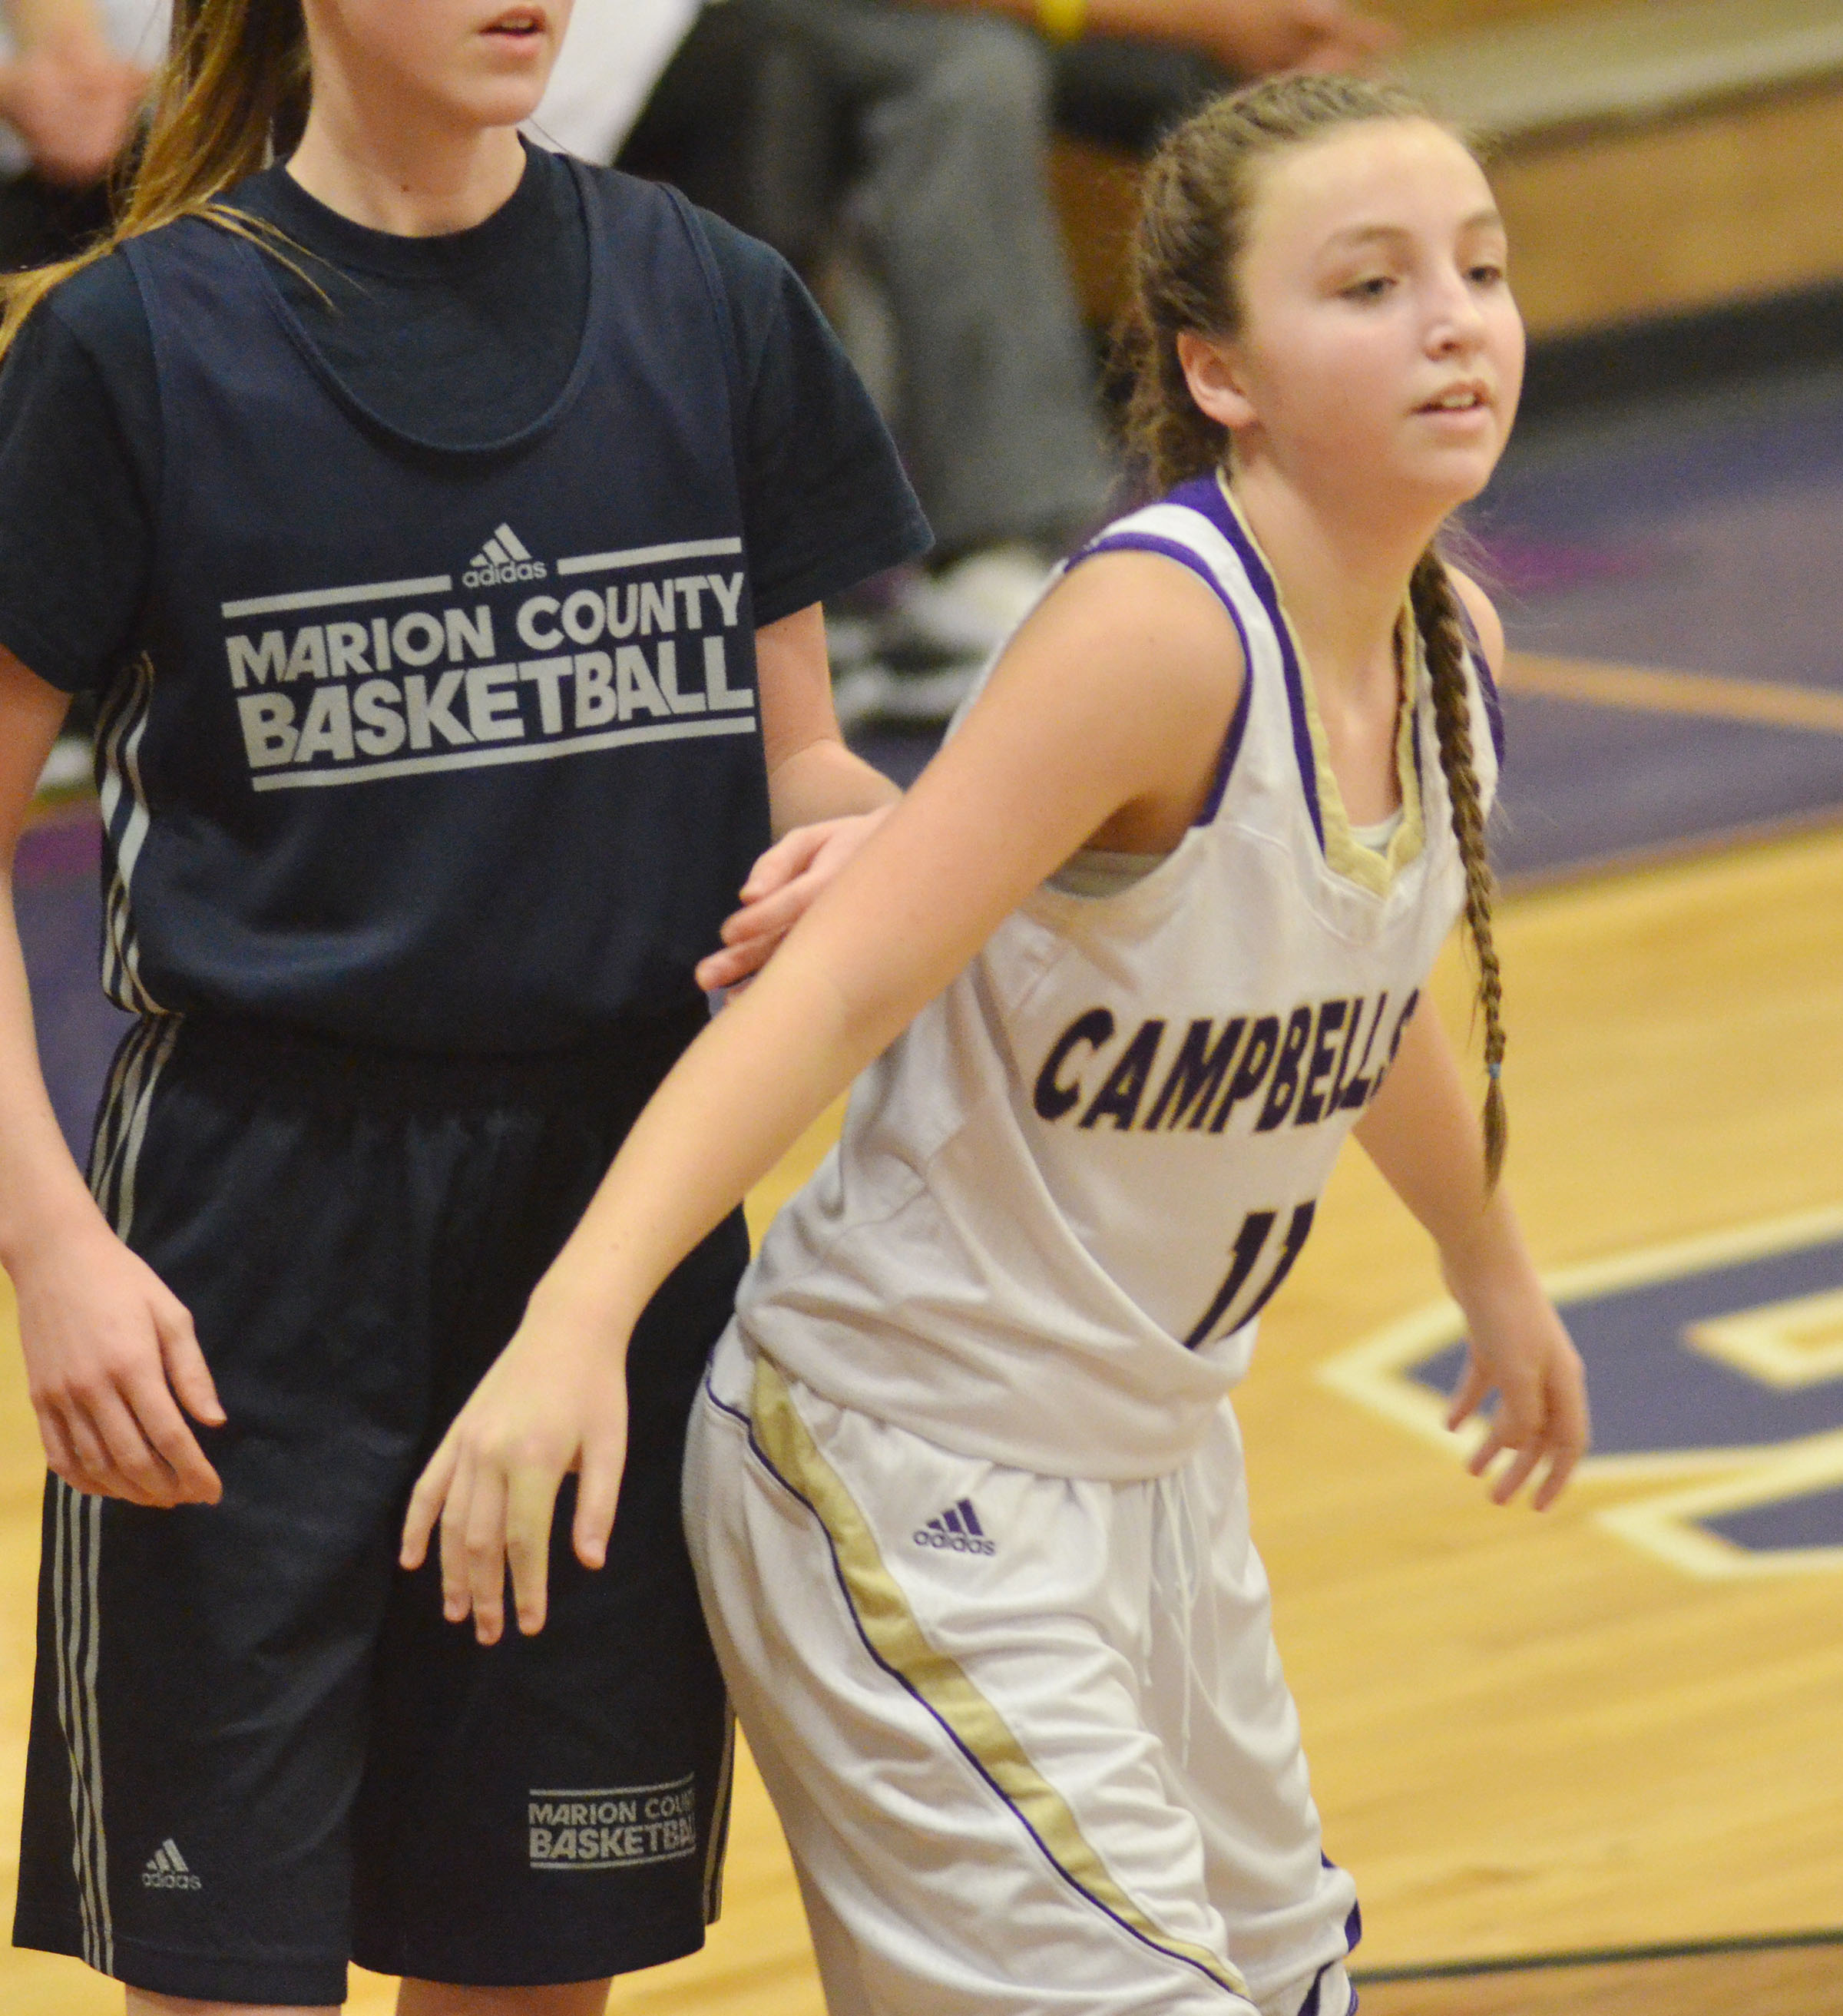 Campbellsville Middle School seventh-grader Lainey Watson plays defense.